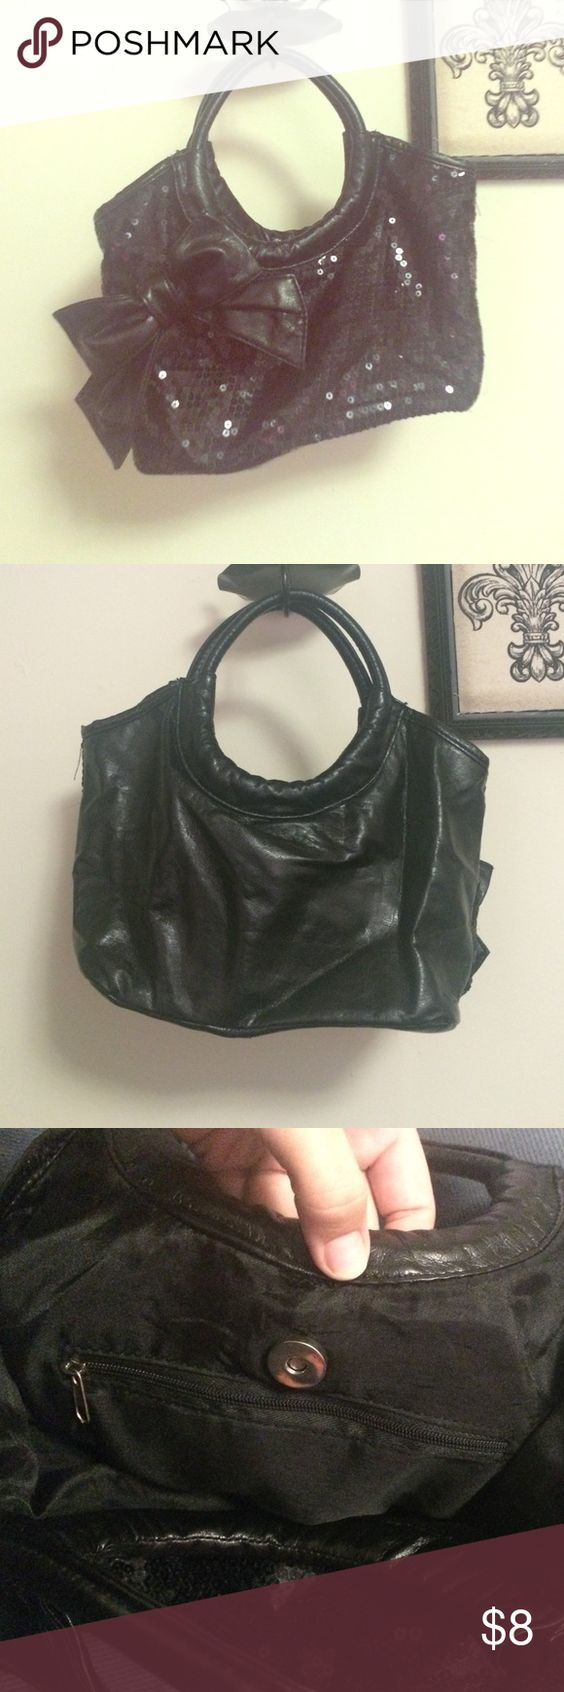 Adorable mini black purse w/ bow!🎀 Sequins covering the front with a cute bow to the side!🎀❤️ in great condition hardly ever been used!😊👍🏻 Bags Mini Bags